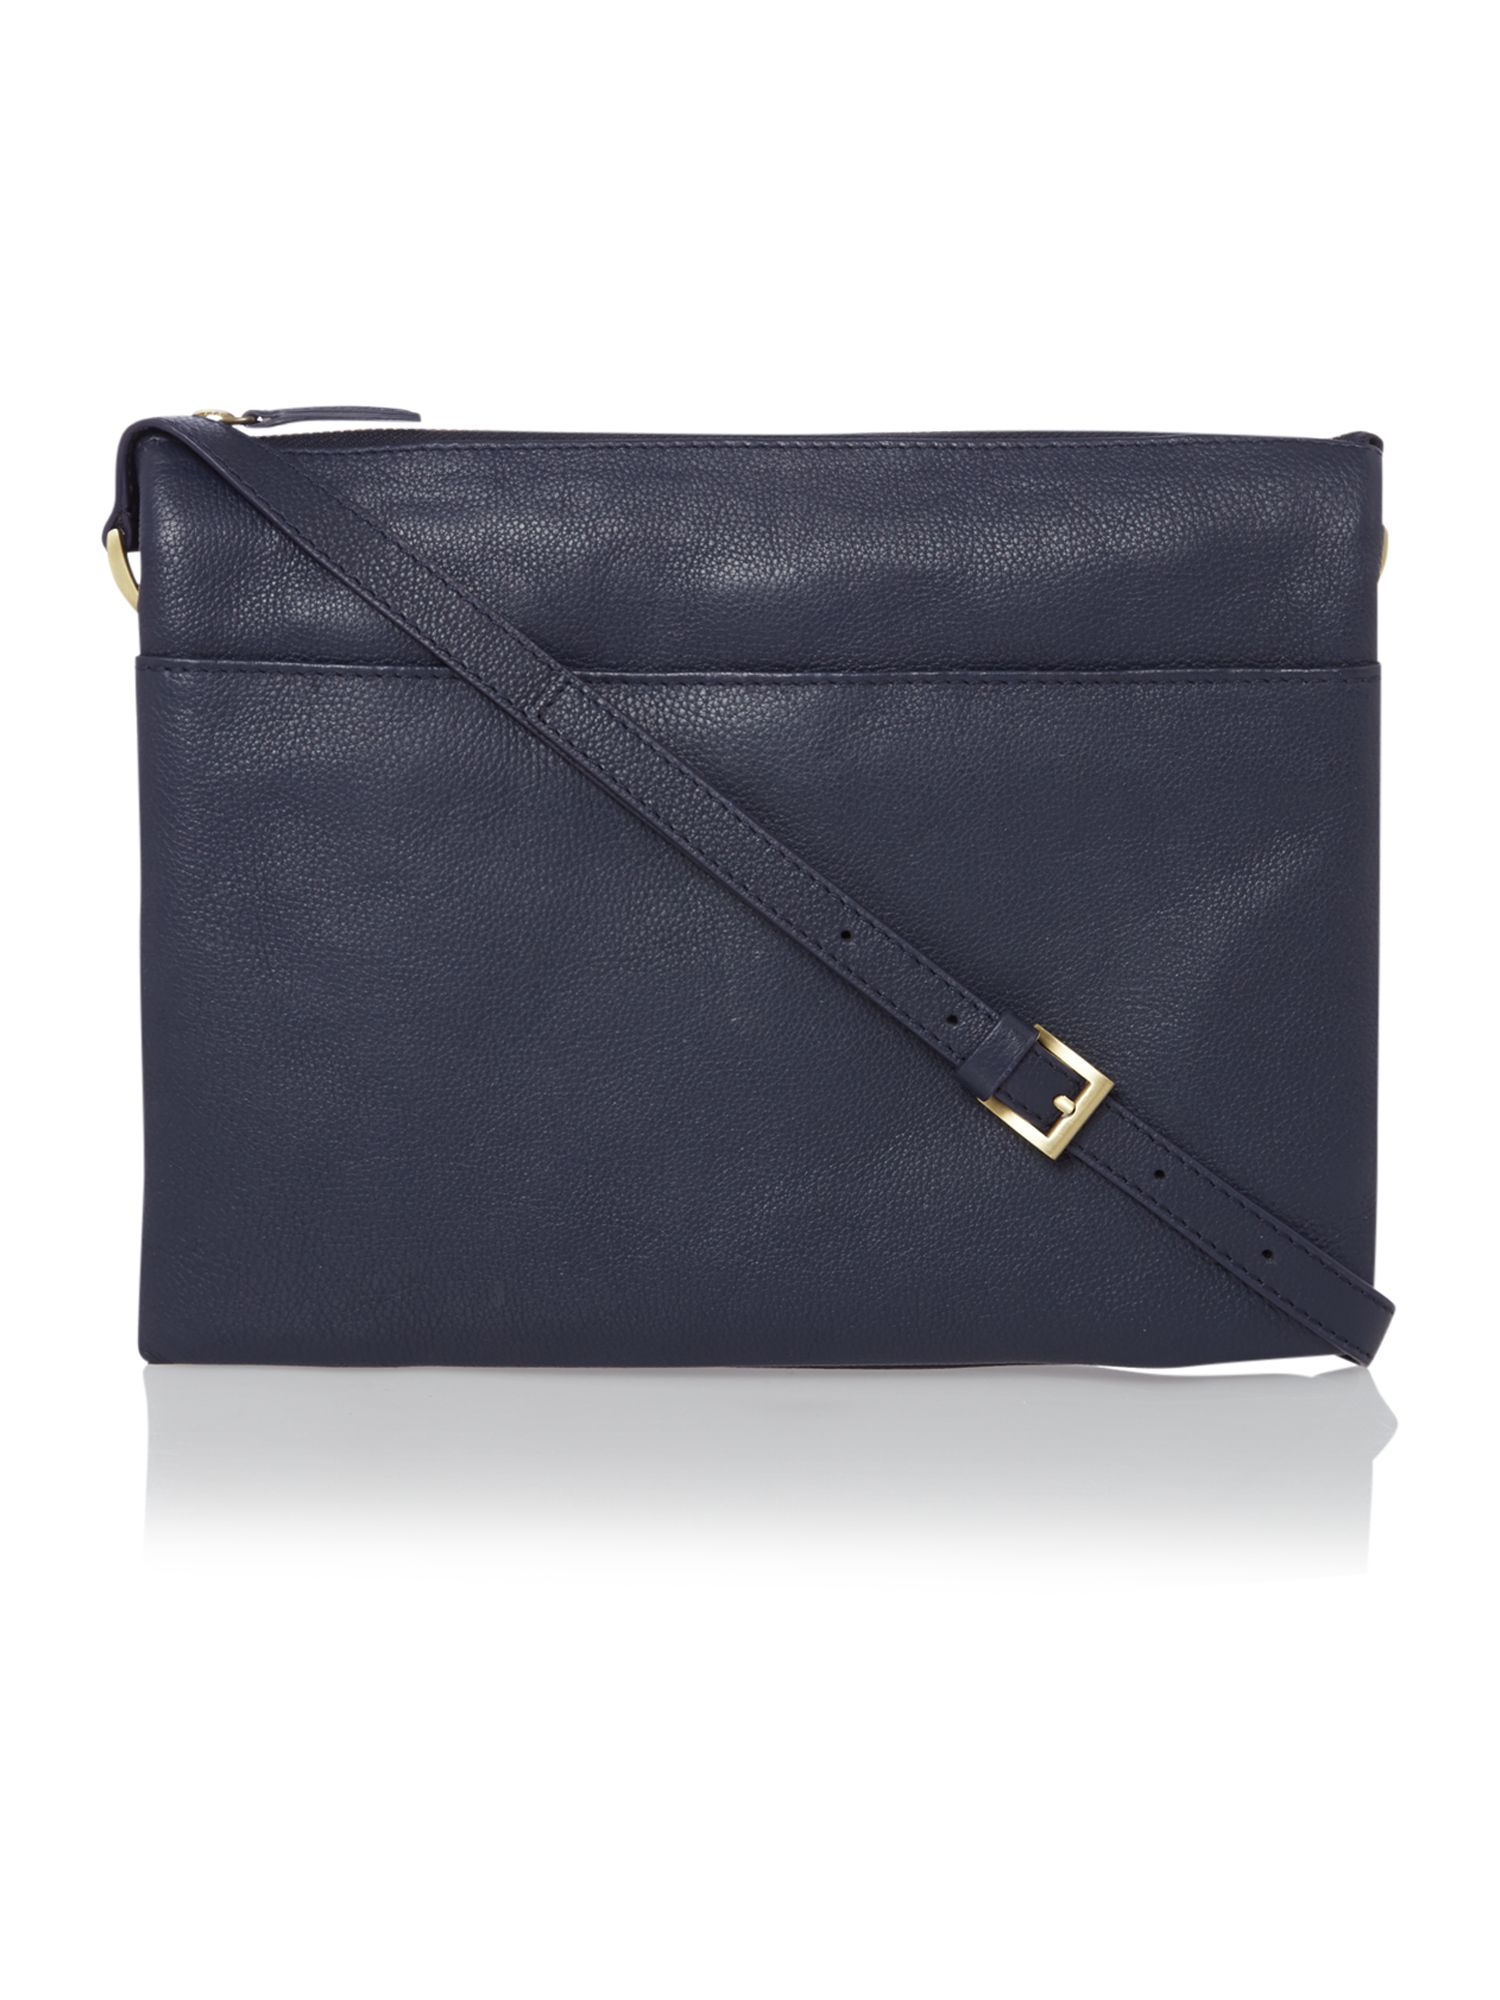 Norfolk cross body handbag